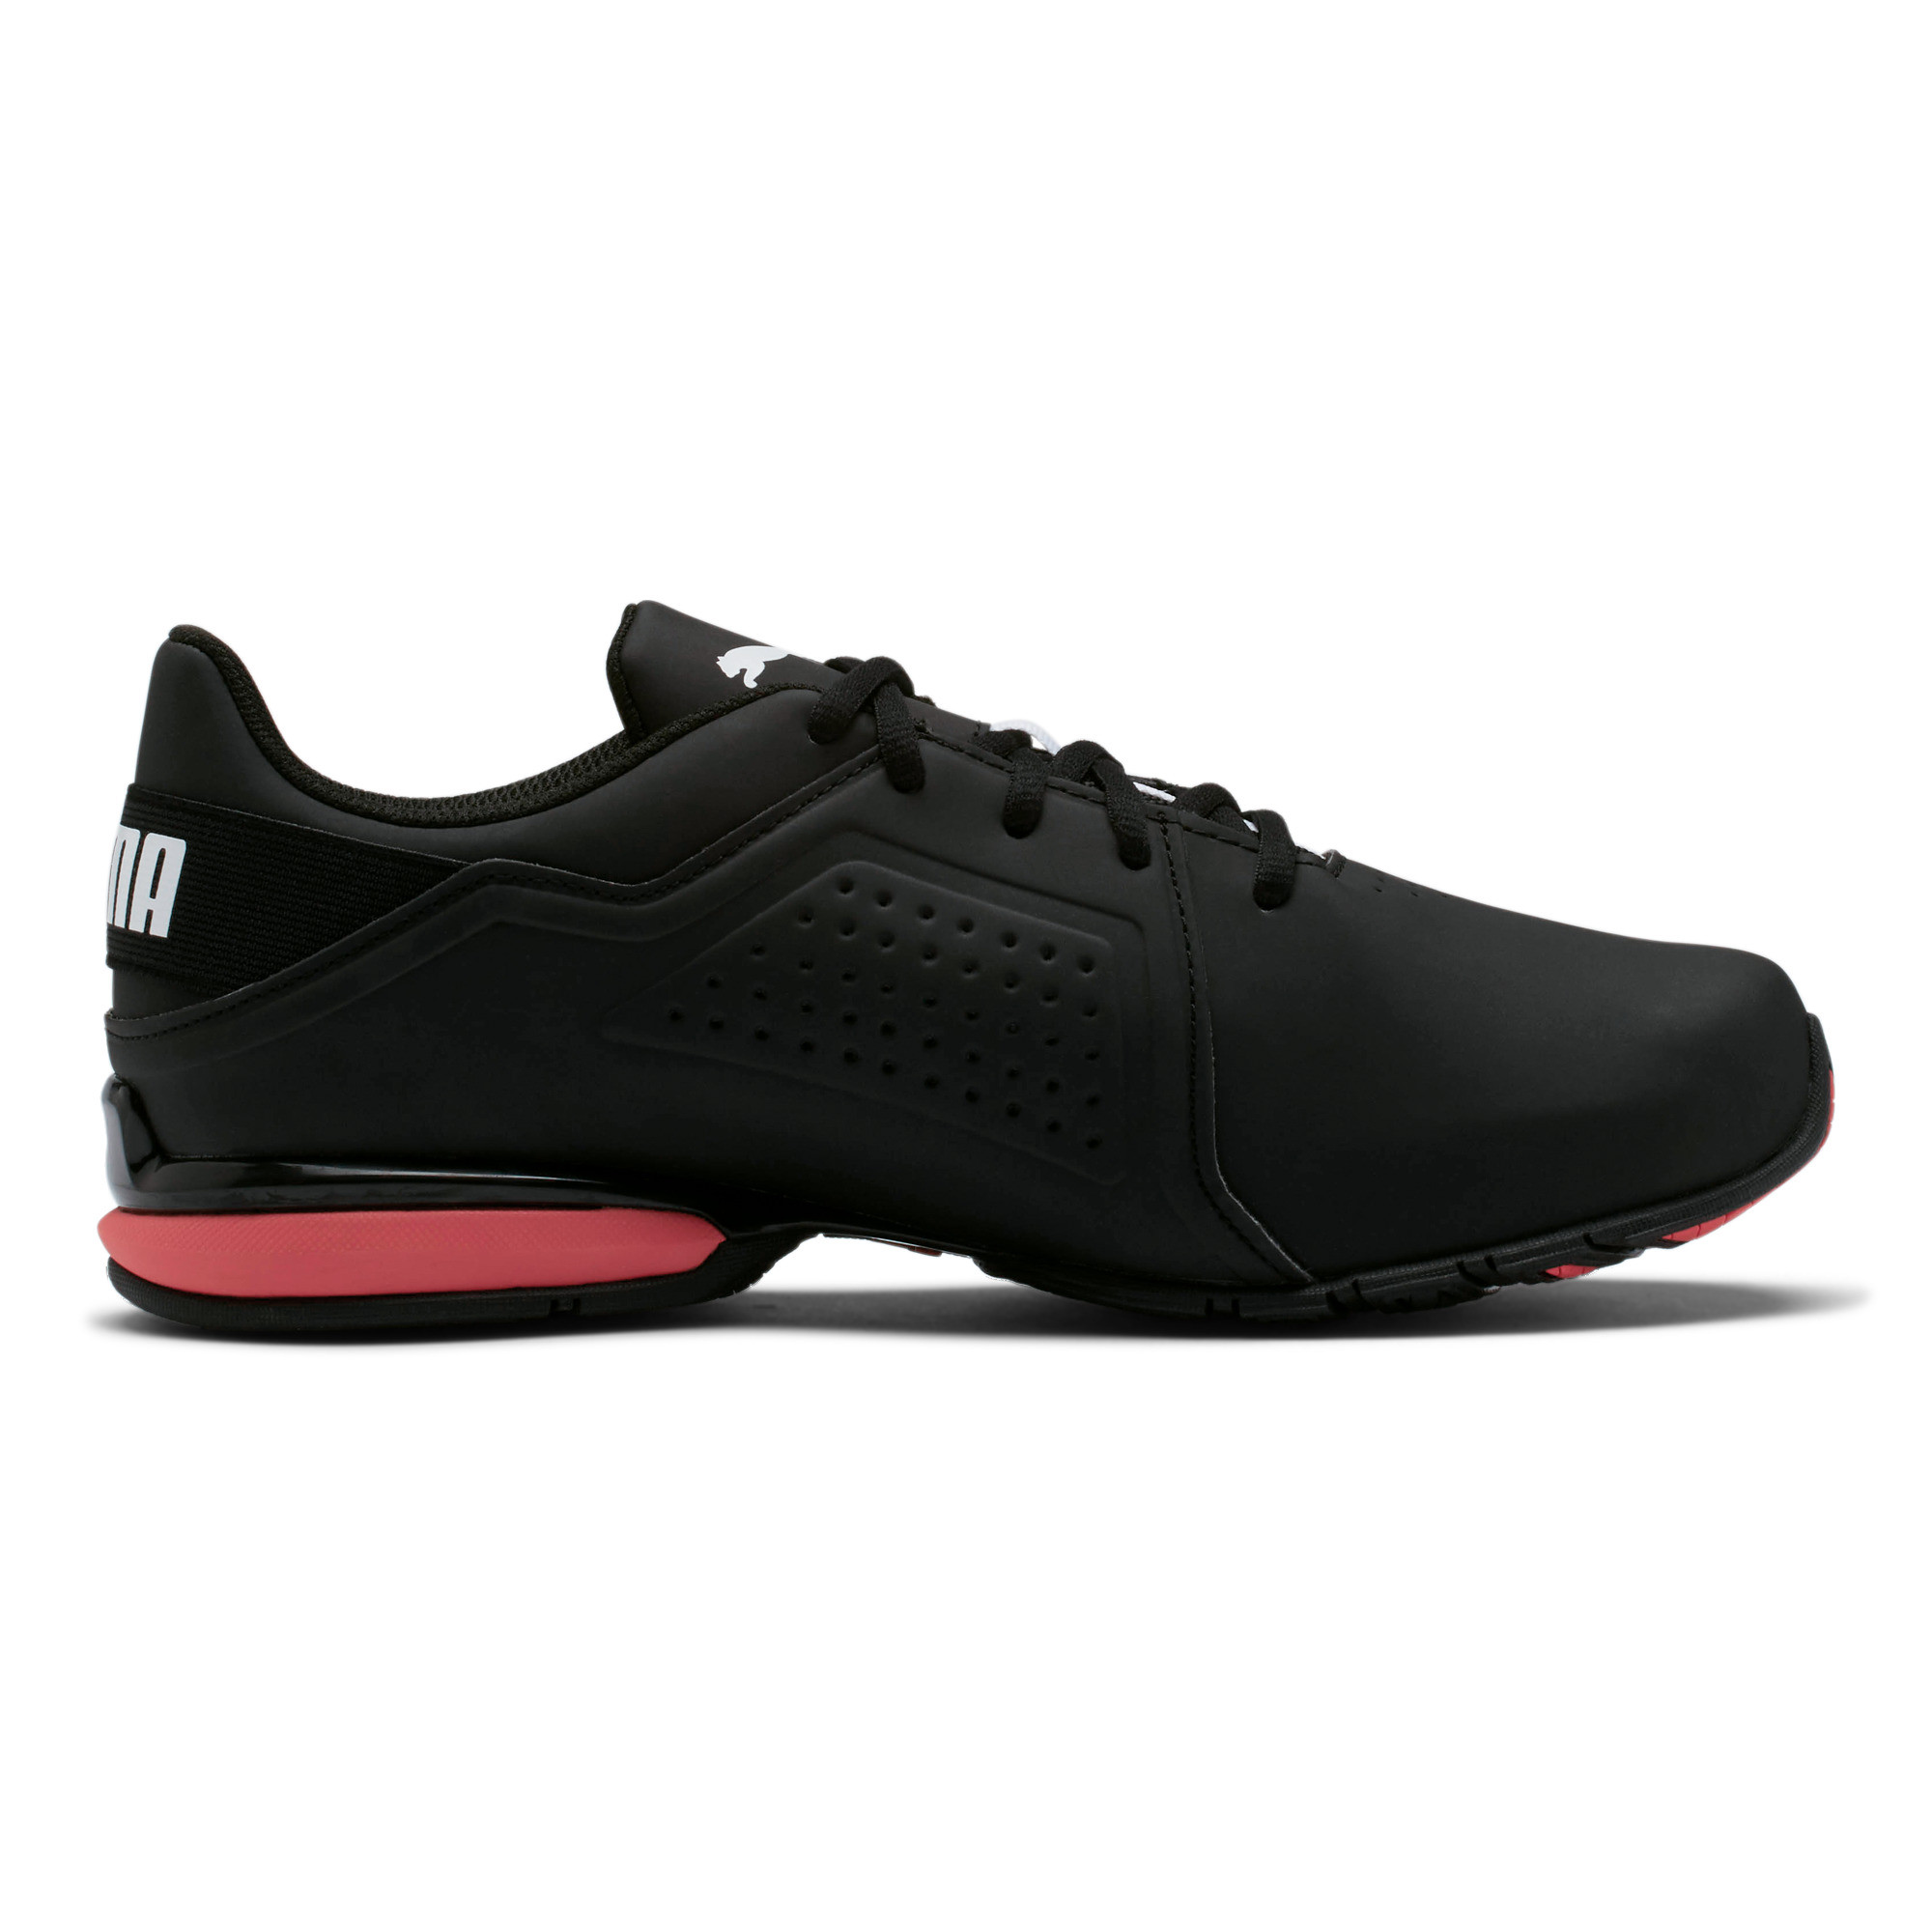 PUMA-Men-039-s-Viz-Runner-Training-Shoes thumbnail 6